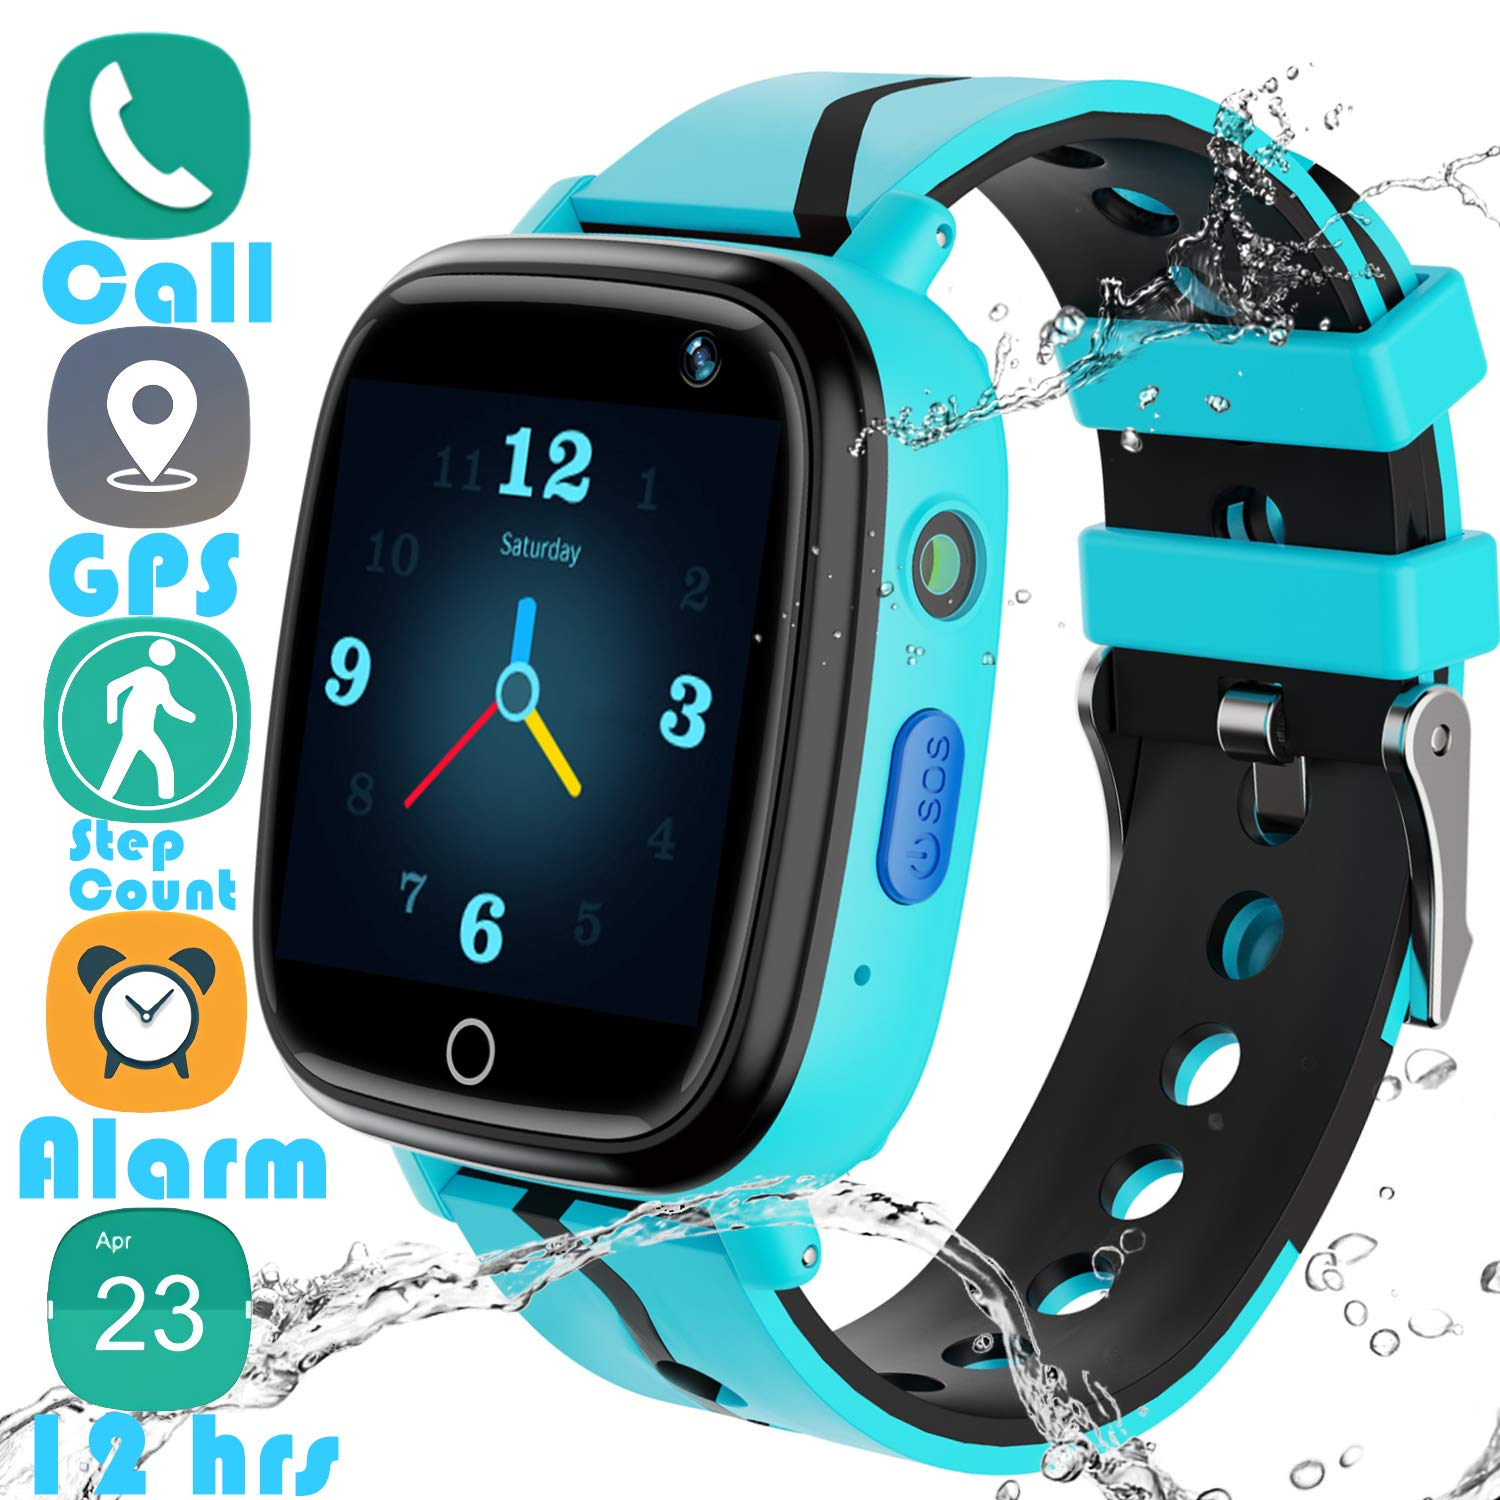 Kids Smartwatch GPS Tracker Gadget - 2019 New Waterproof Children Smart Watches with 1.4'' Touch Screen 12 hrs SOS Phone Call Talkie Walkie Pedometer Fitness Sports Band for Boys Girls Age 4-12 (Blue) by YENISEY